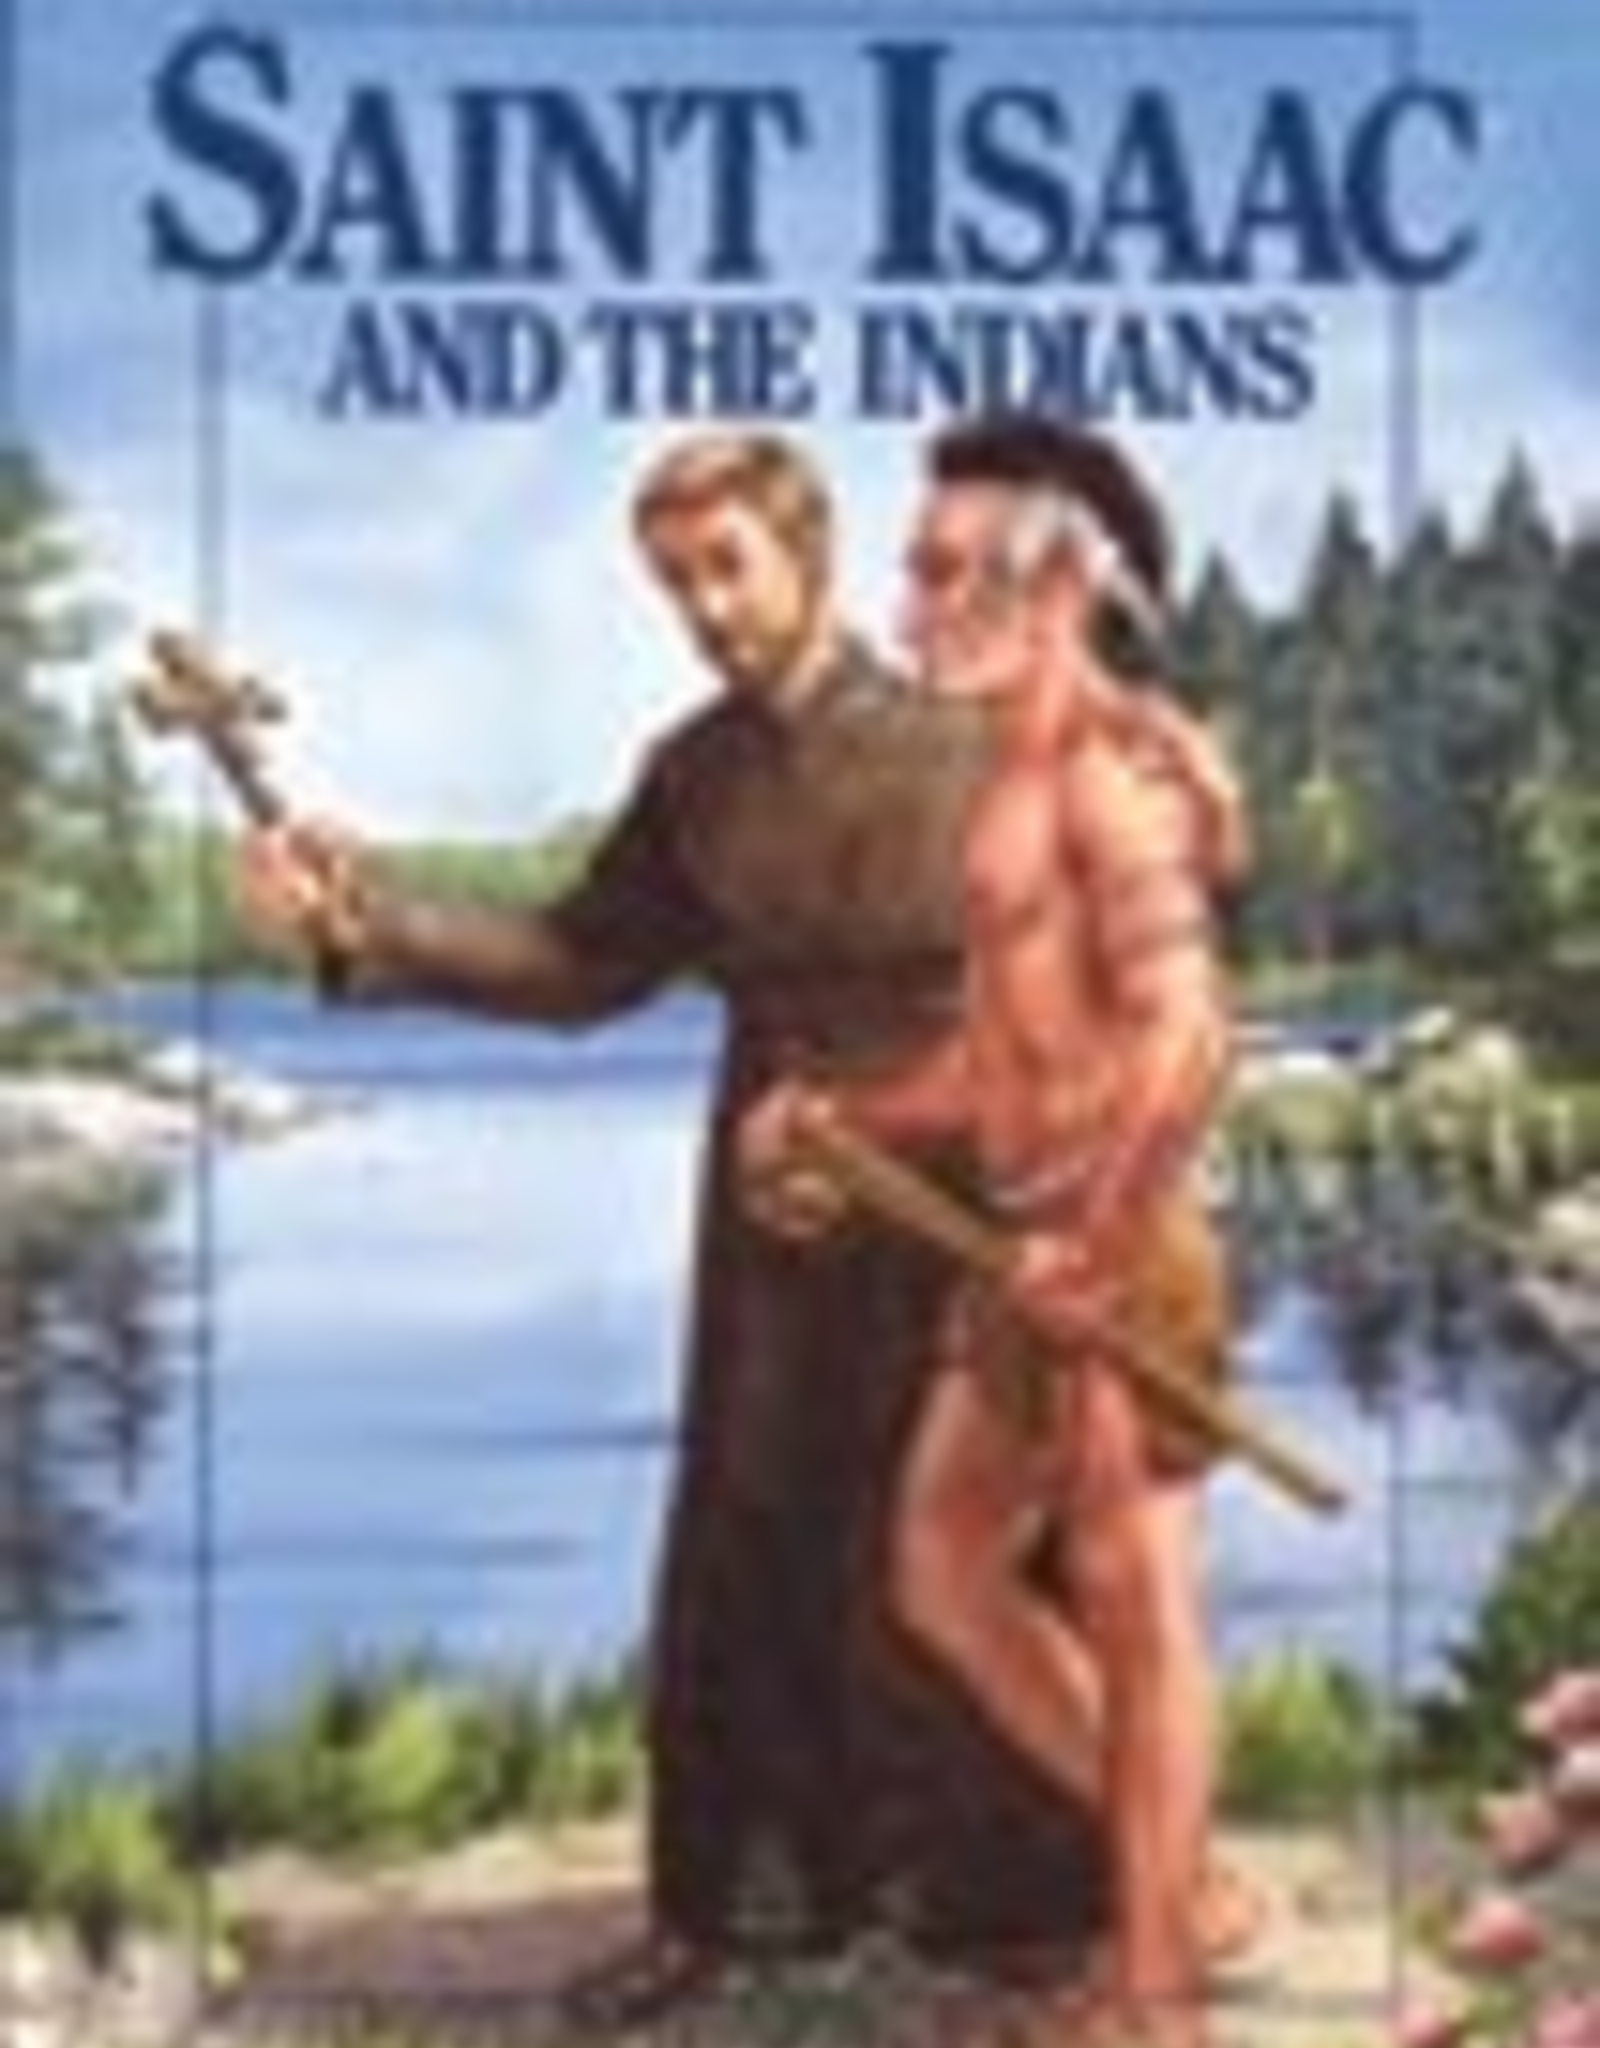 Ignatius Press Saint Isaac and the Indians, by Milton Lomask ( paperback)